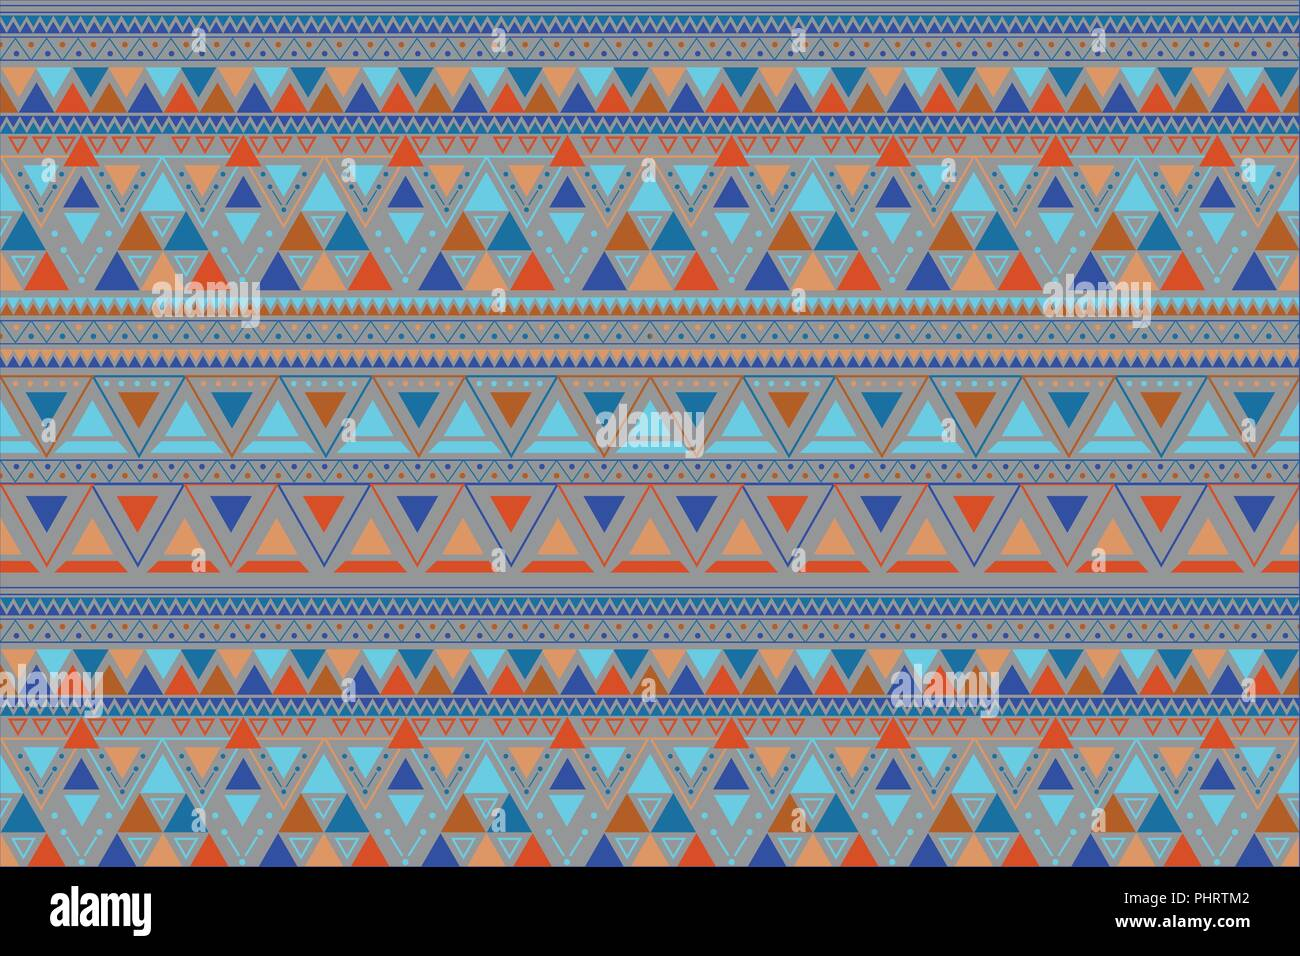 Tribal art lineal pattern. Ethnic geometric print. - Stock Image